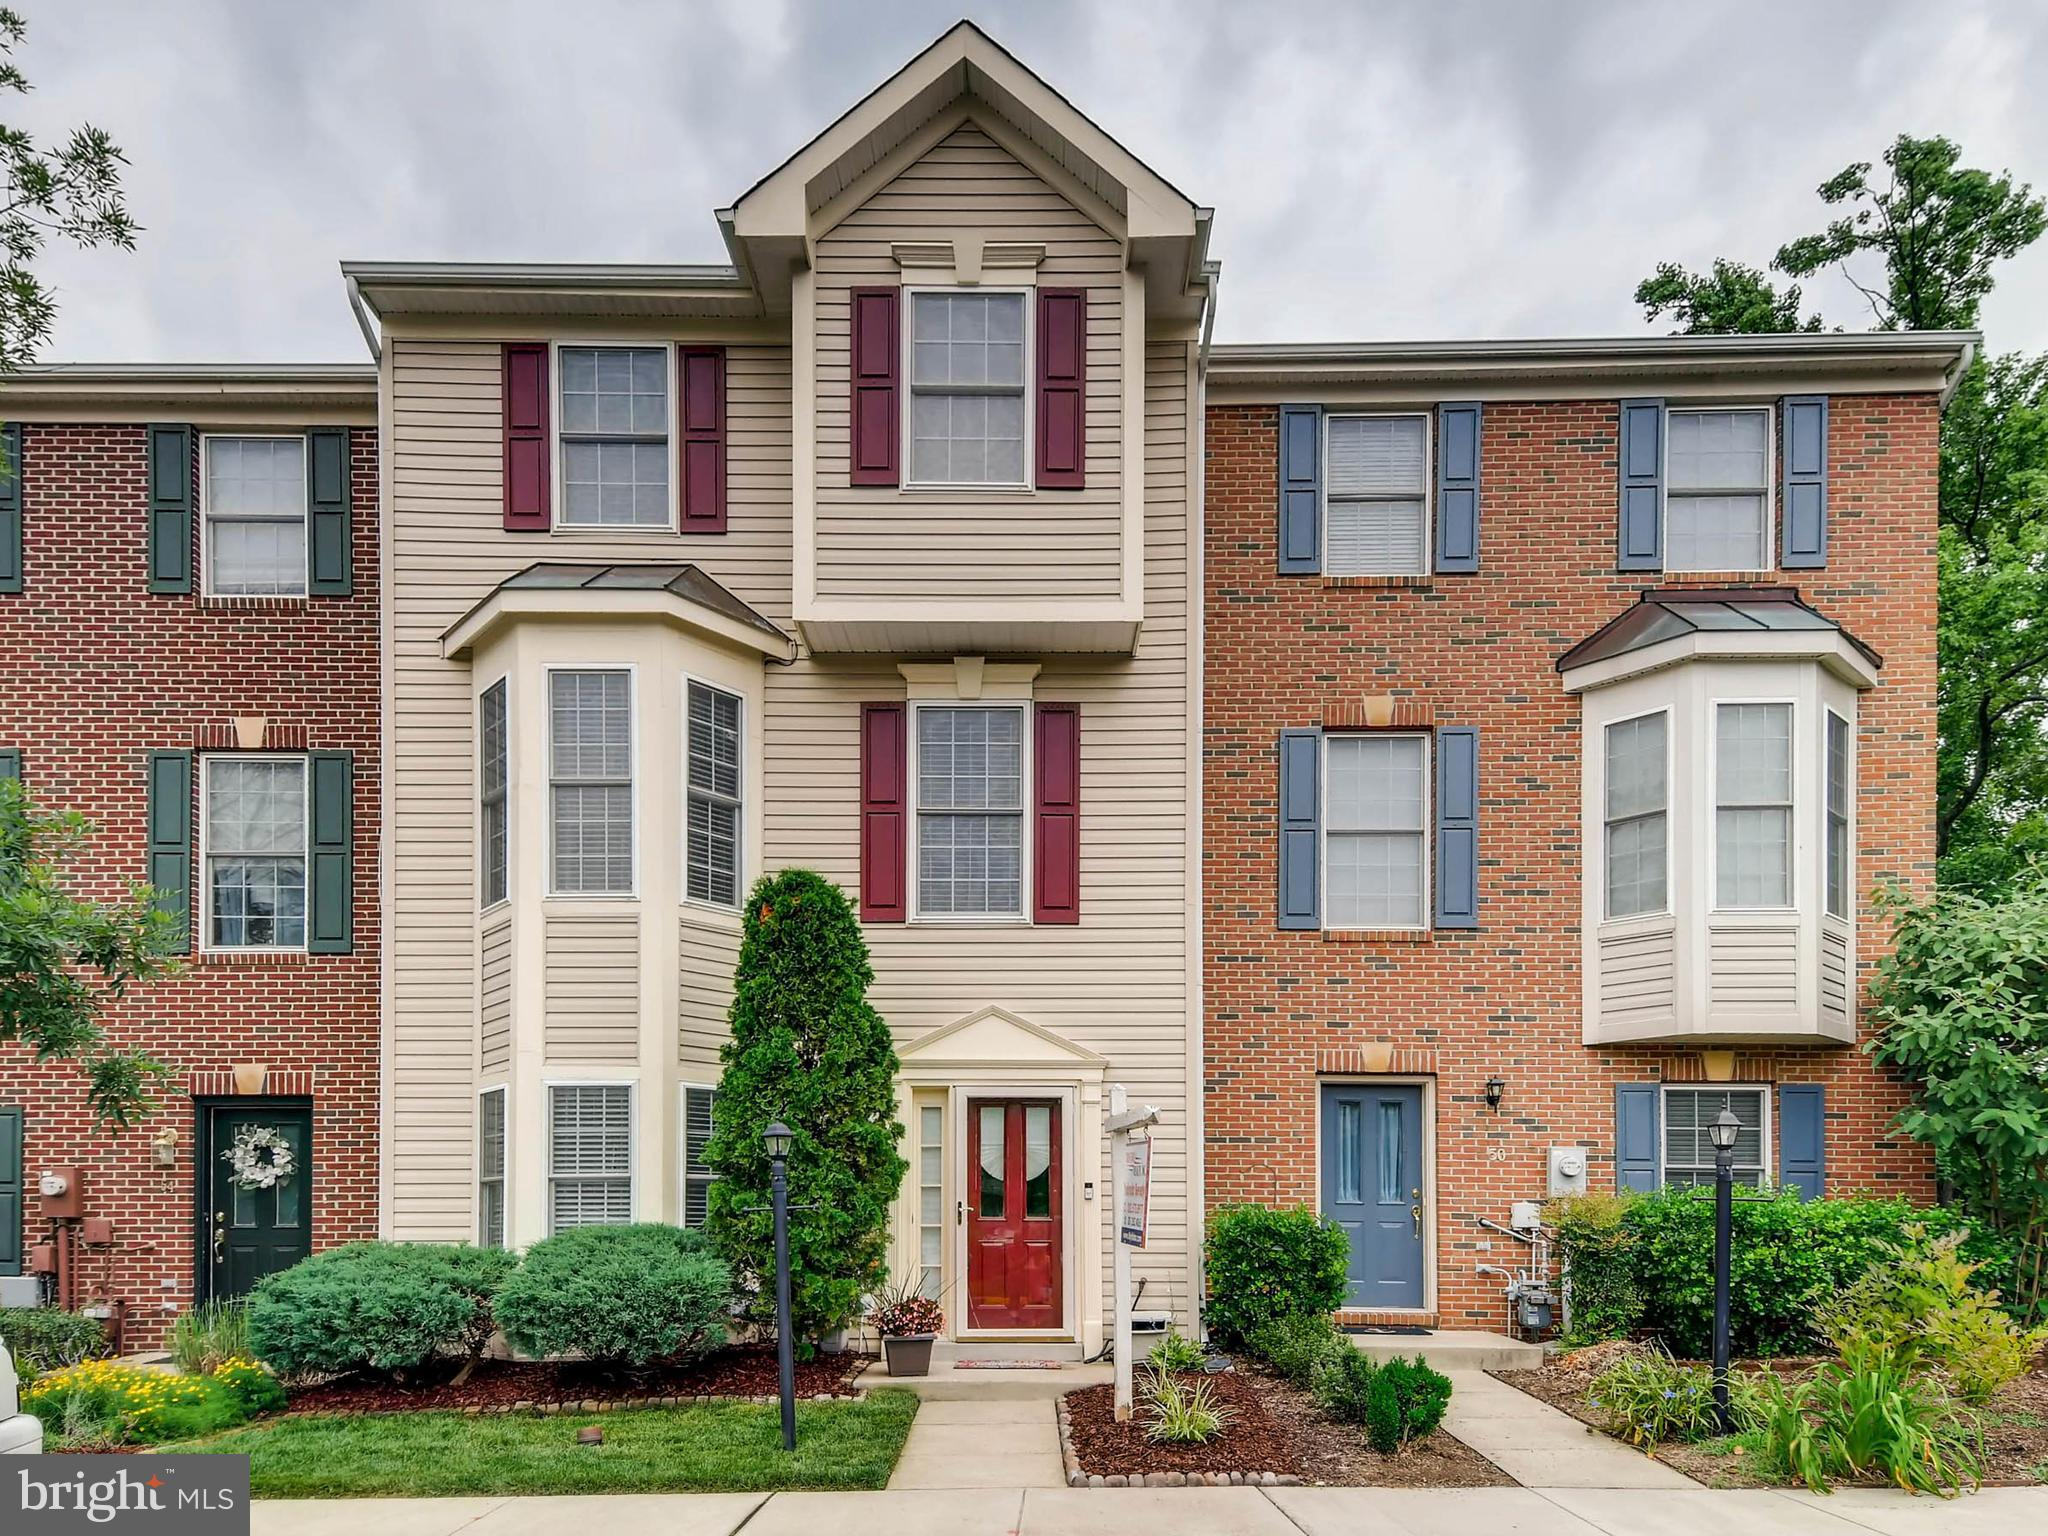 Price Reduced! This well maintained townhome in sought after River Oaks has 4 bedrooms, 2 full baths and features several recent upgrades. Enjoy a large eat-in kitchen with granite countertops/ceramic tile floors. Open living room/dining room with hardwood floors. Room for 1/2 bath on lower level. Close to shopping, waterfront dining, Annapolis and DC. SELLER OFFERING $2000 CARPET ALLOWANCE